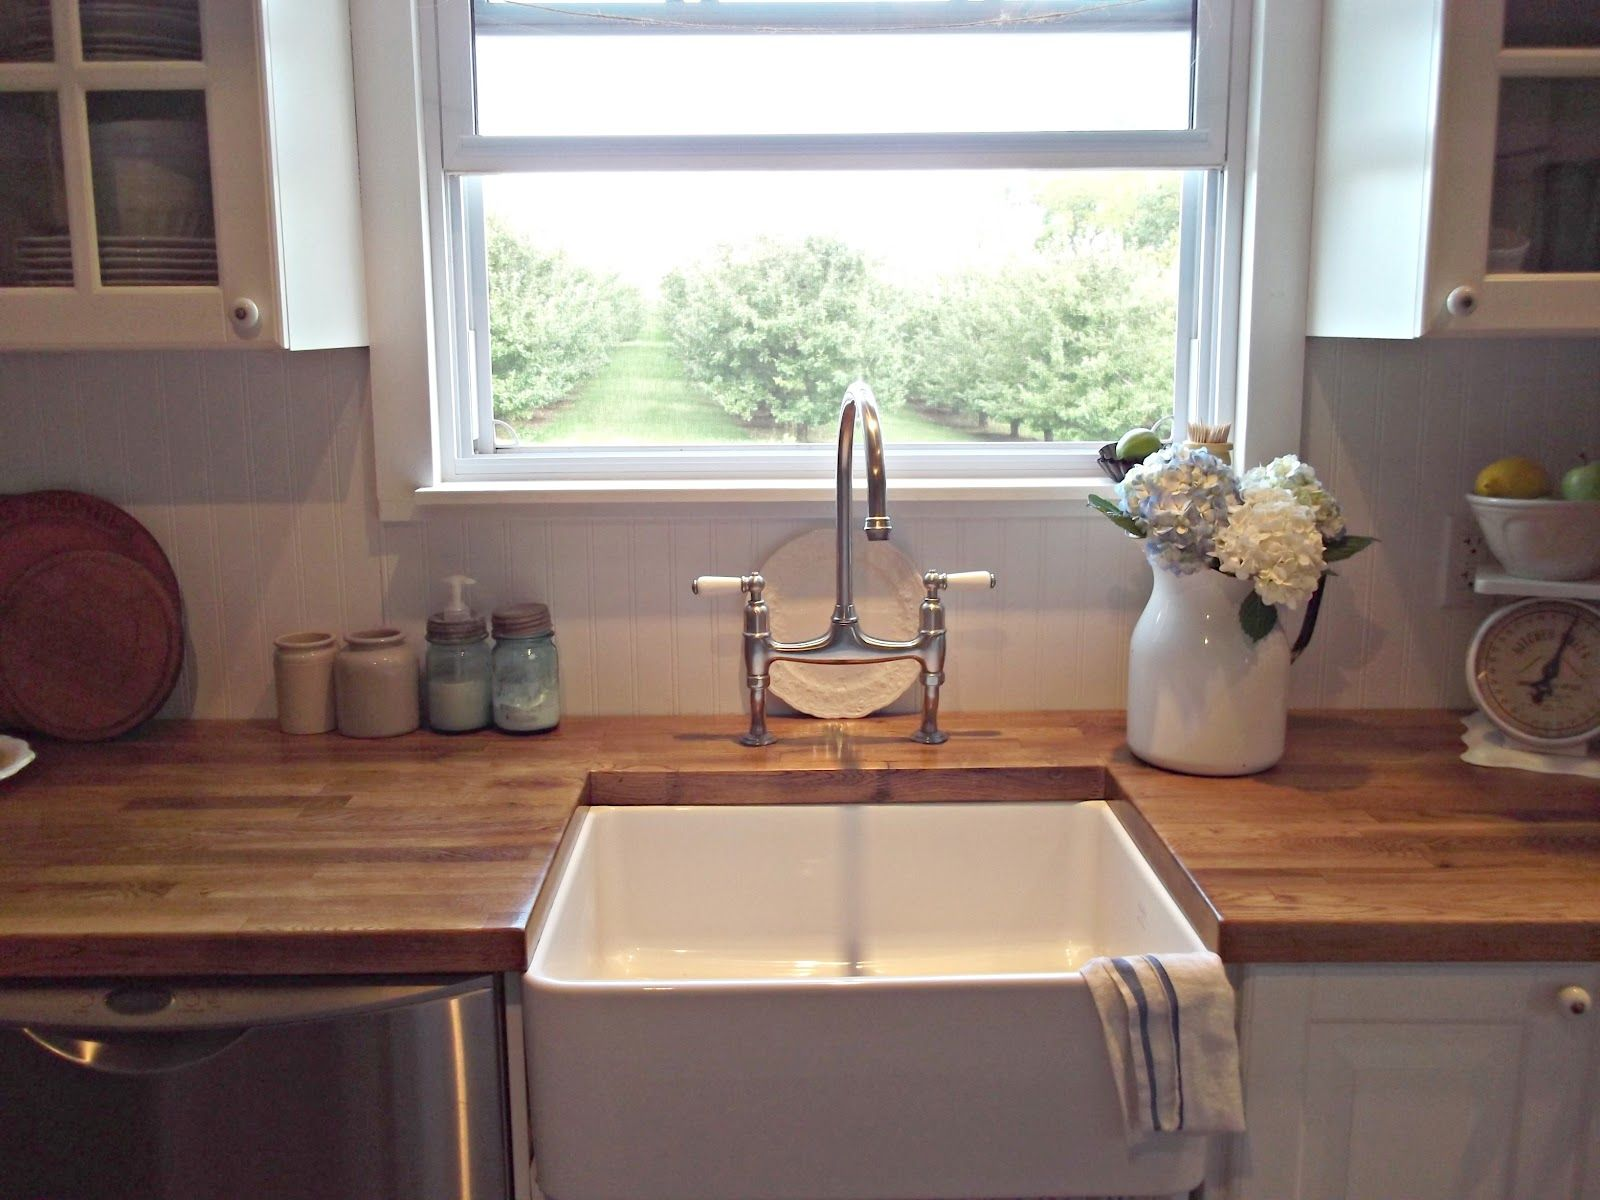 FARMHOUSE STYLE SINKS Rustic Farmhouse A Farm Style